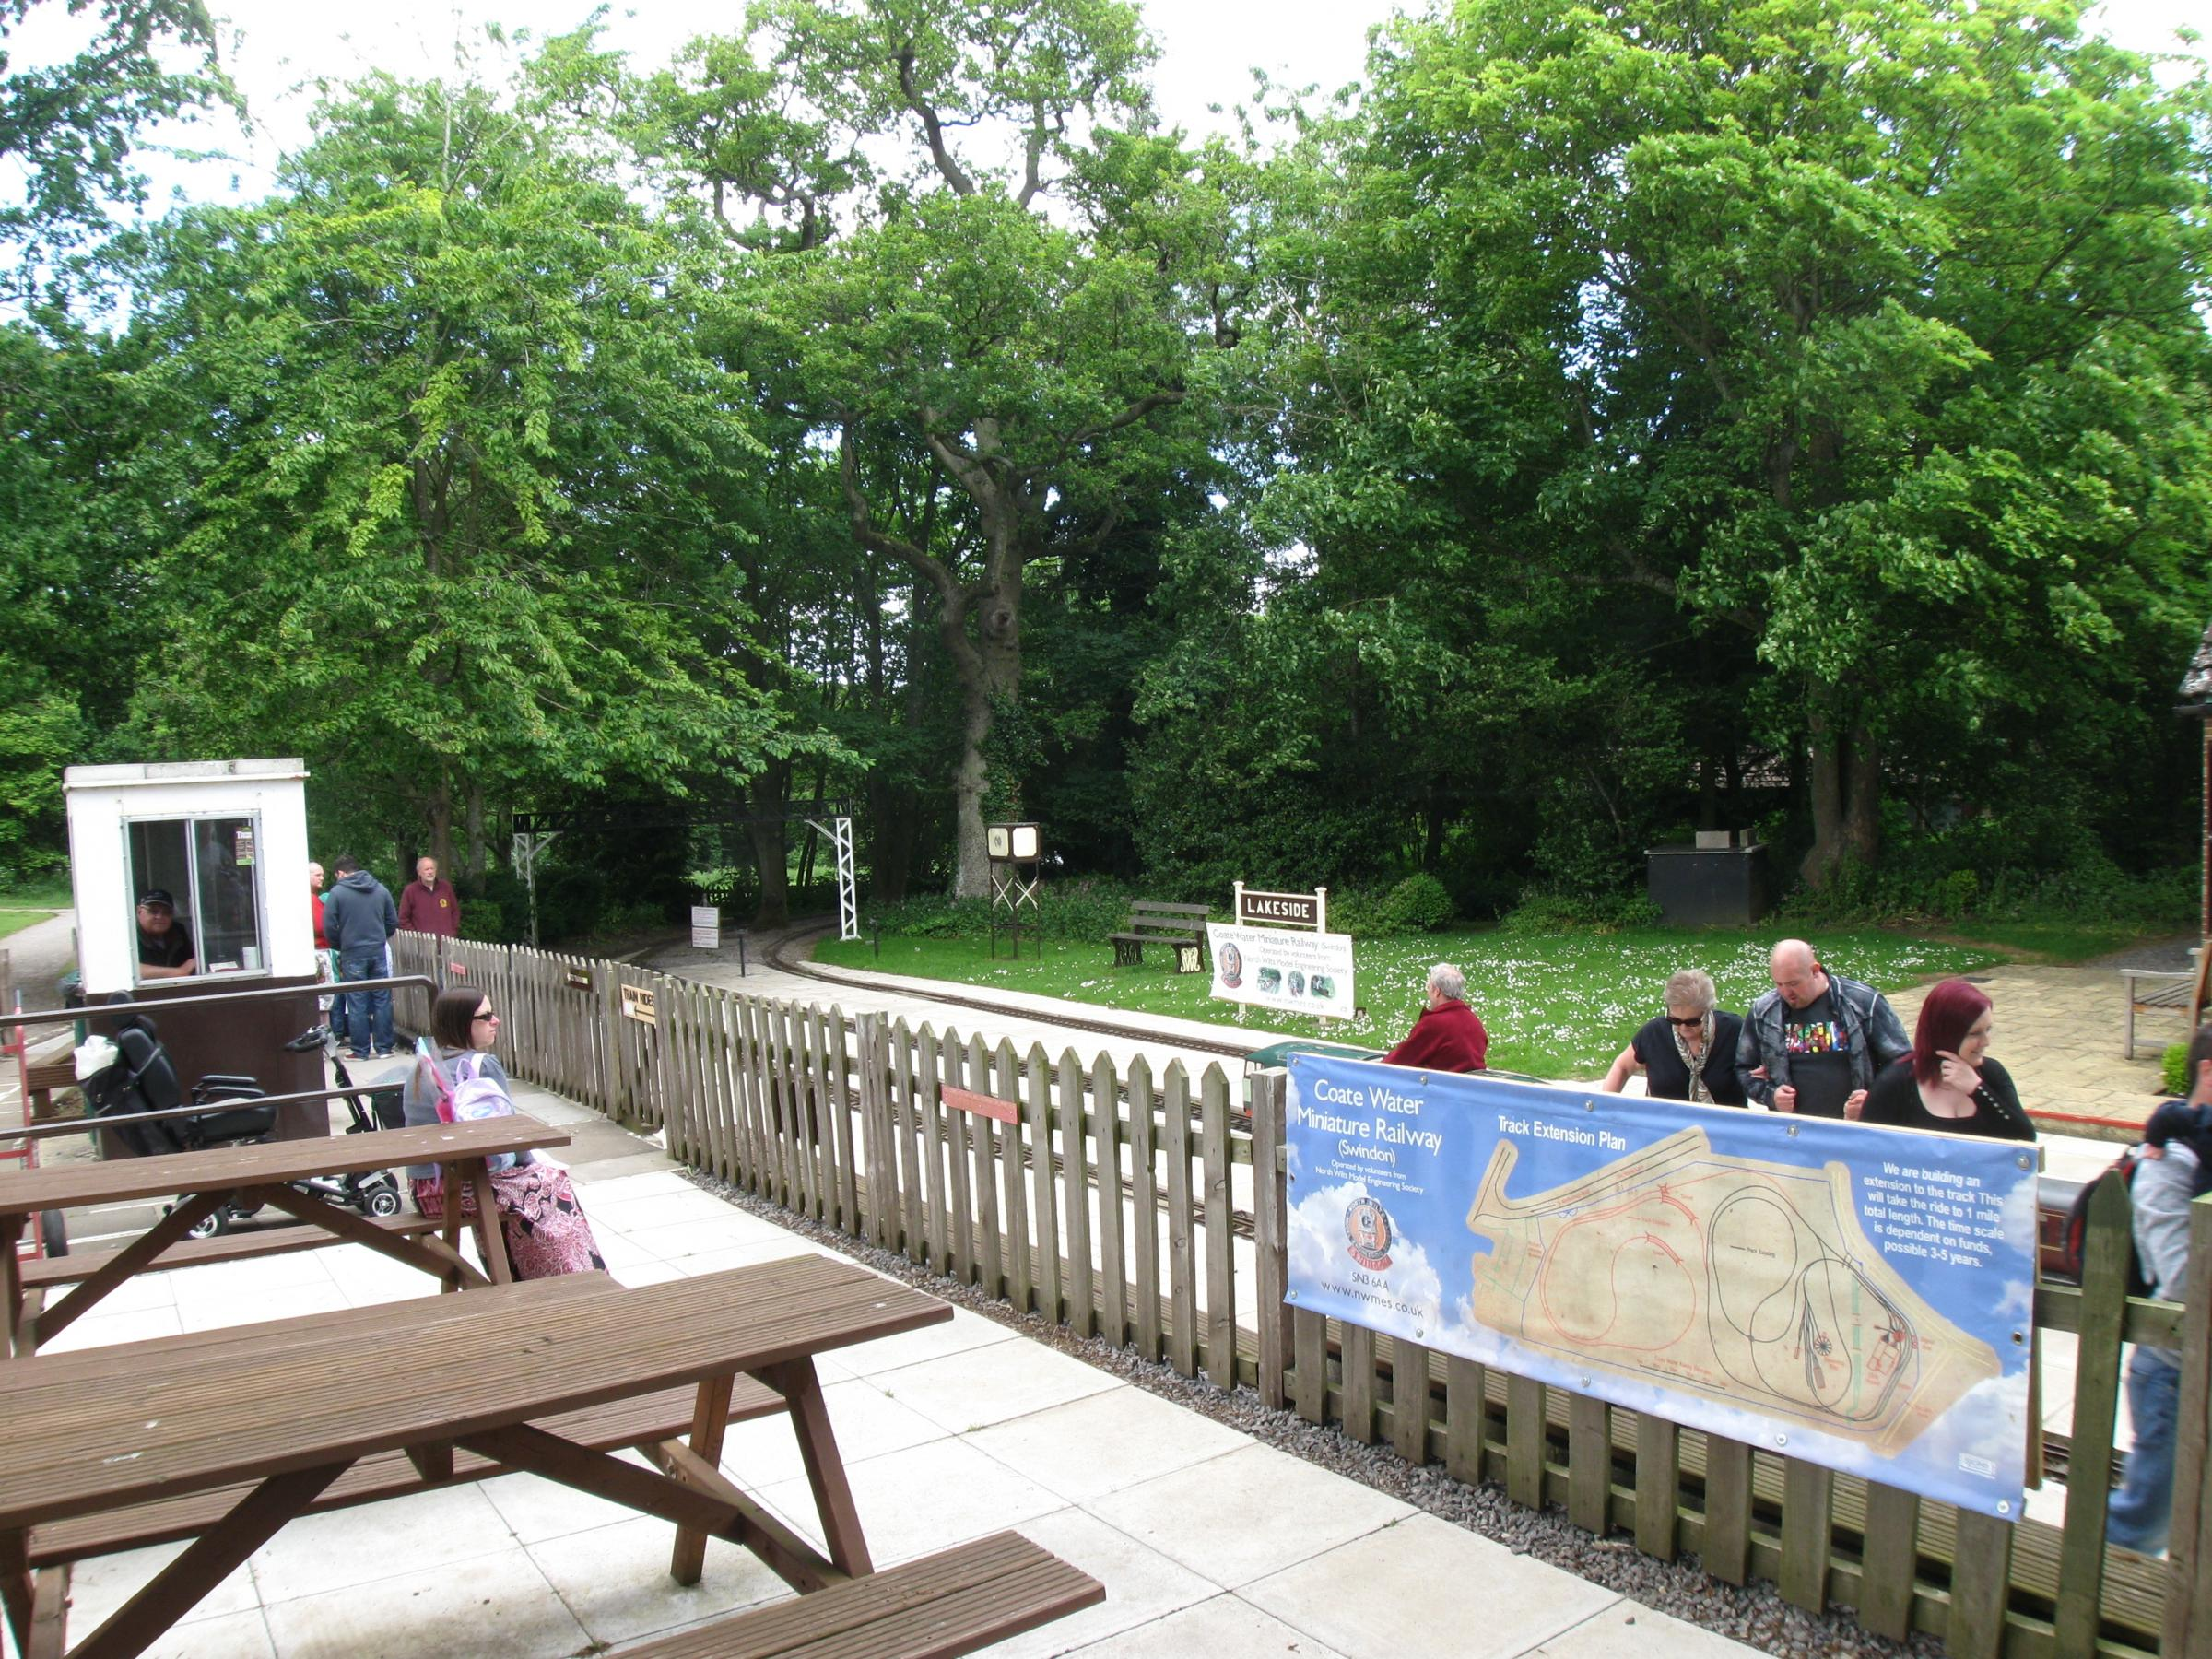 Lakeside Station at the Coate Water Miniature Railway on June 6, 2015. The railway is marking 50 years since it first appeared on the Wiltshire site.